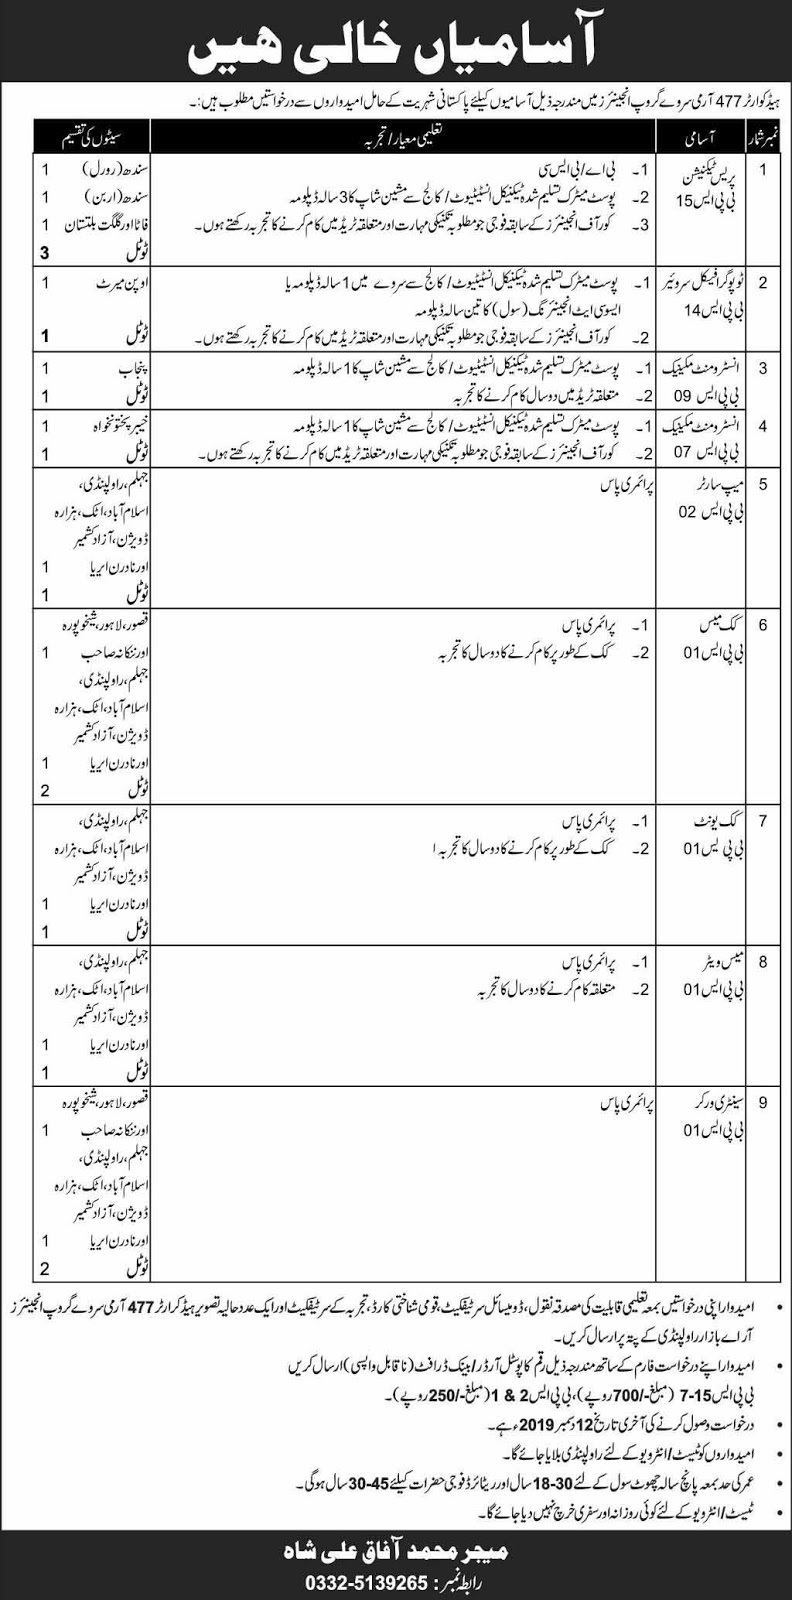 Headquarter 477 Army Survey Group Engineers 25 Aug 2019 Jobs